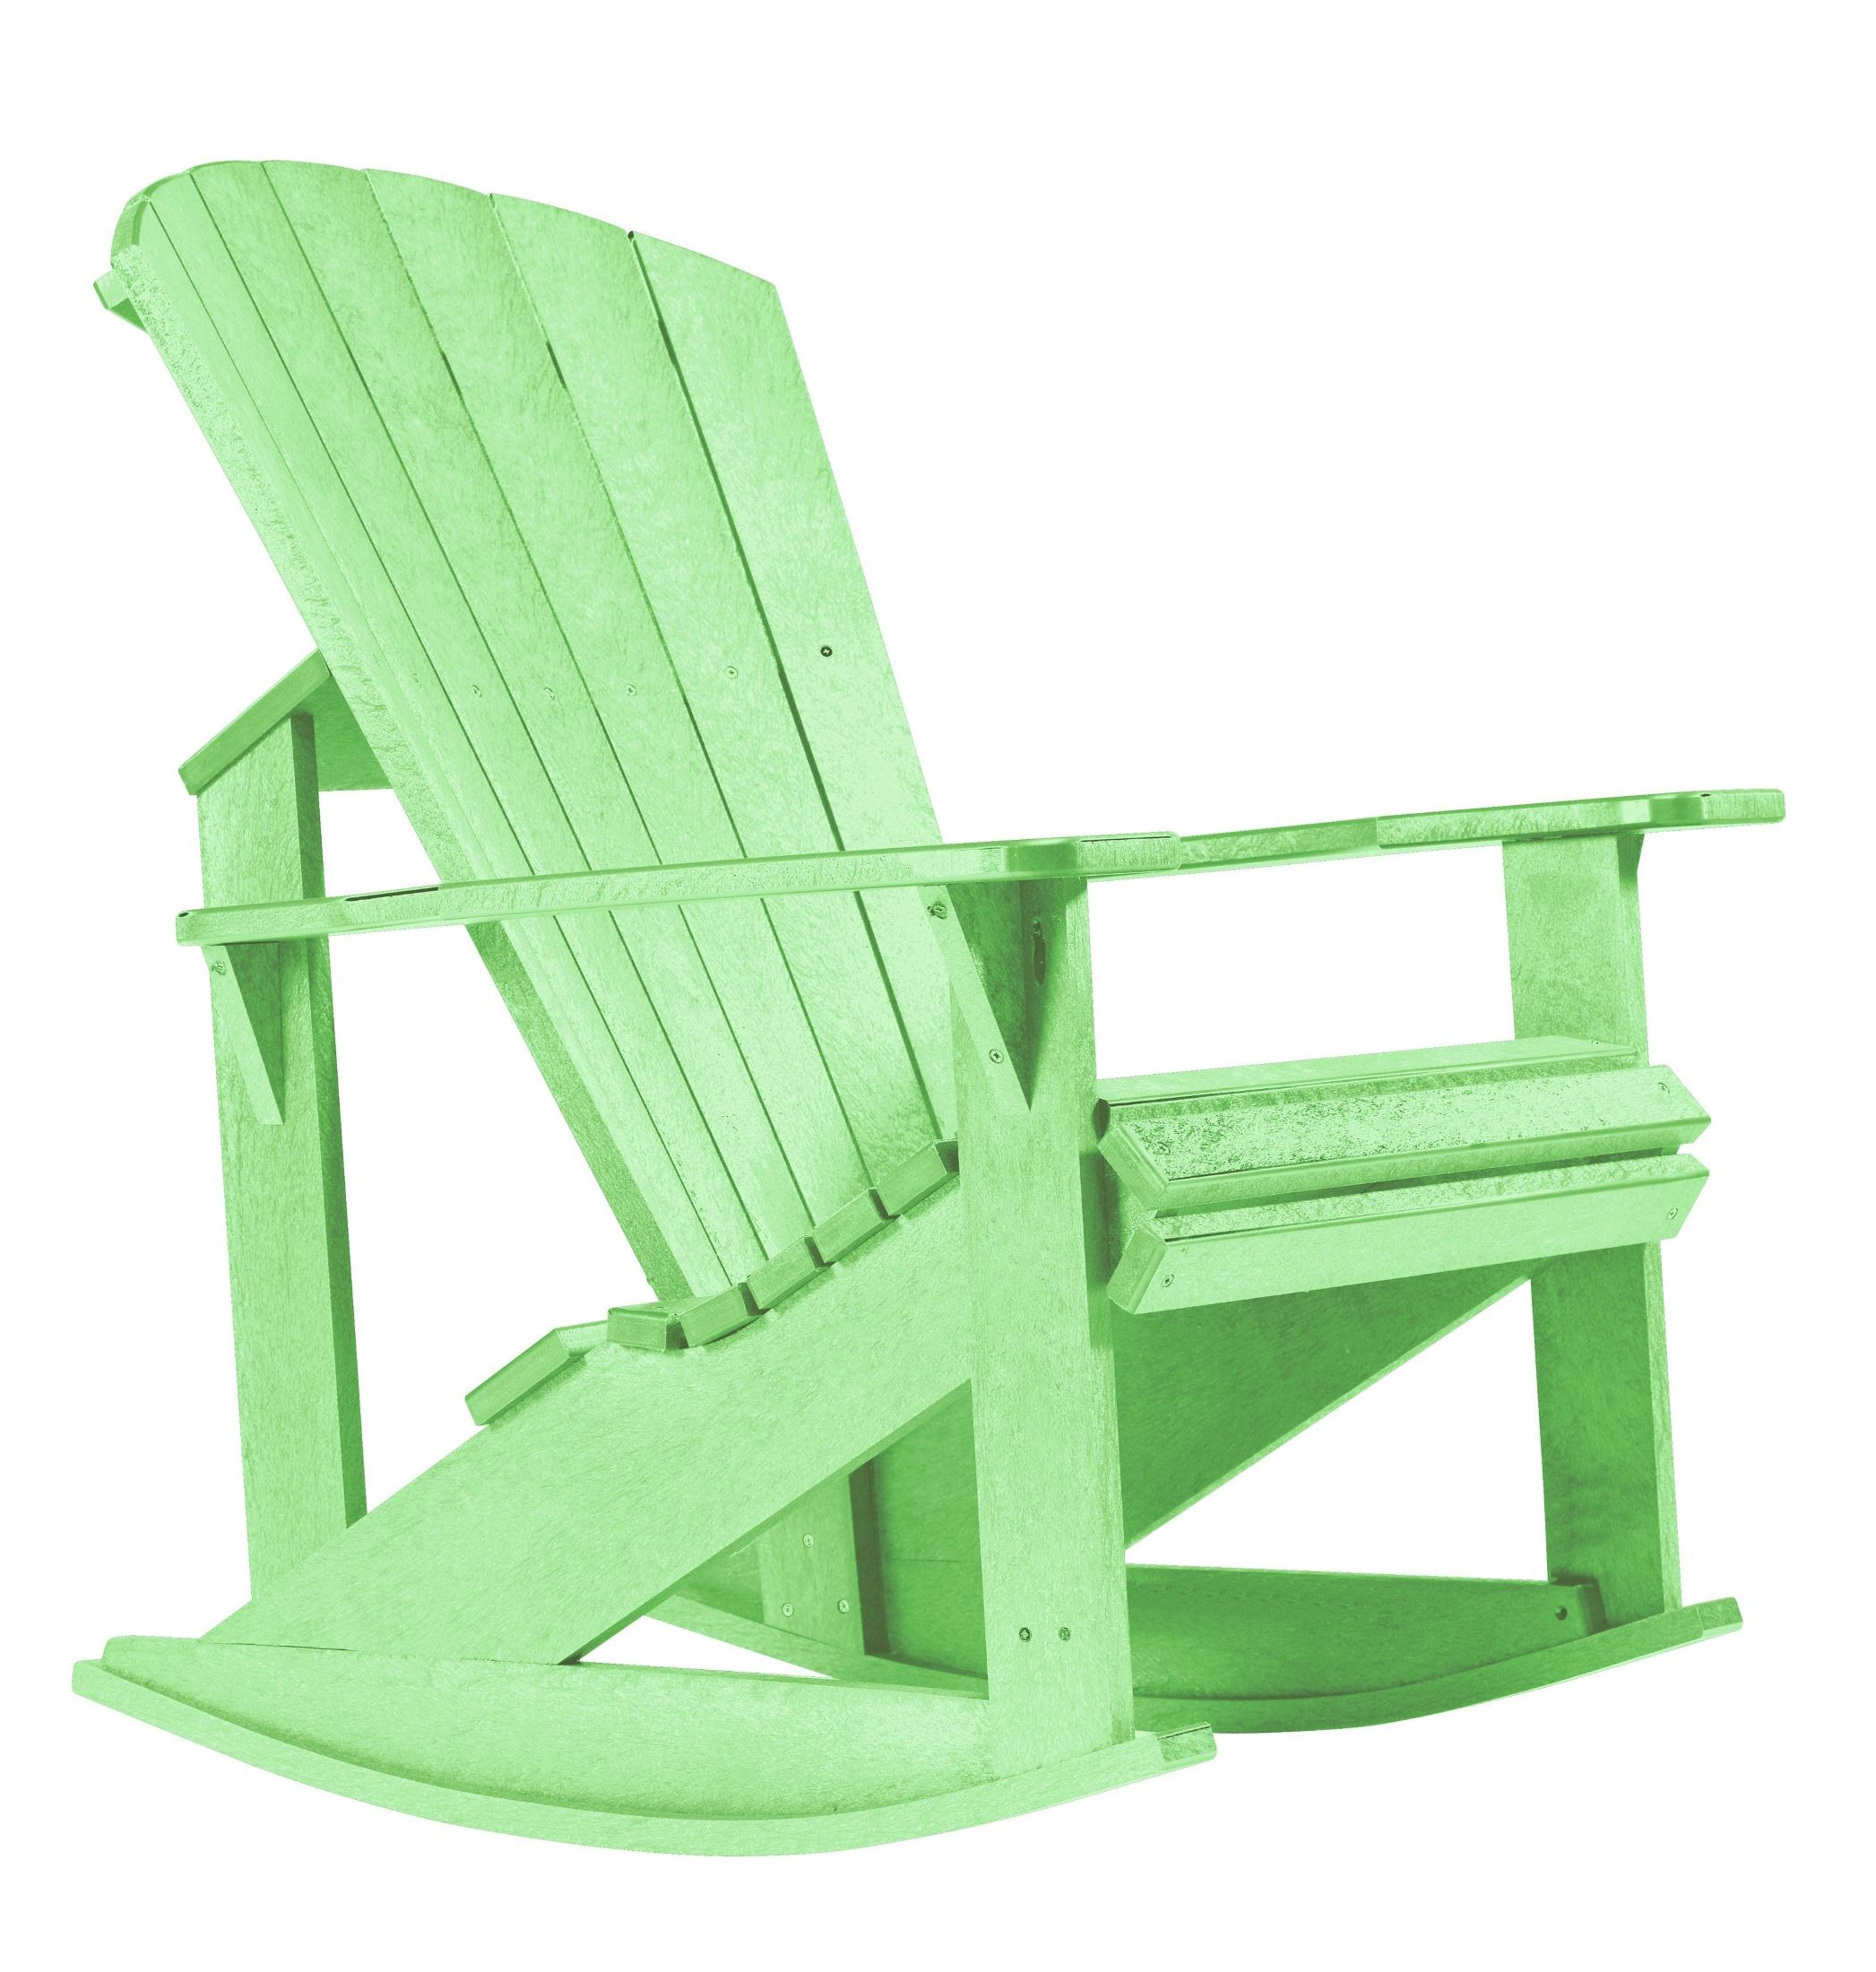 Generations lime green adirondack rocking chair from cr plastic c04 15 coleman furniture - Green resin adirondack chairs ...